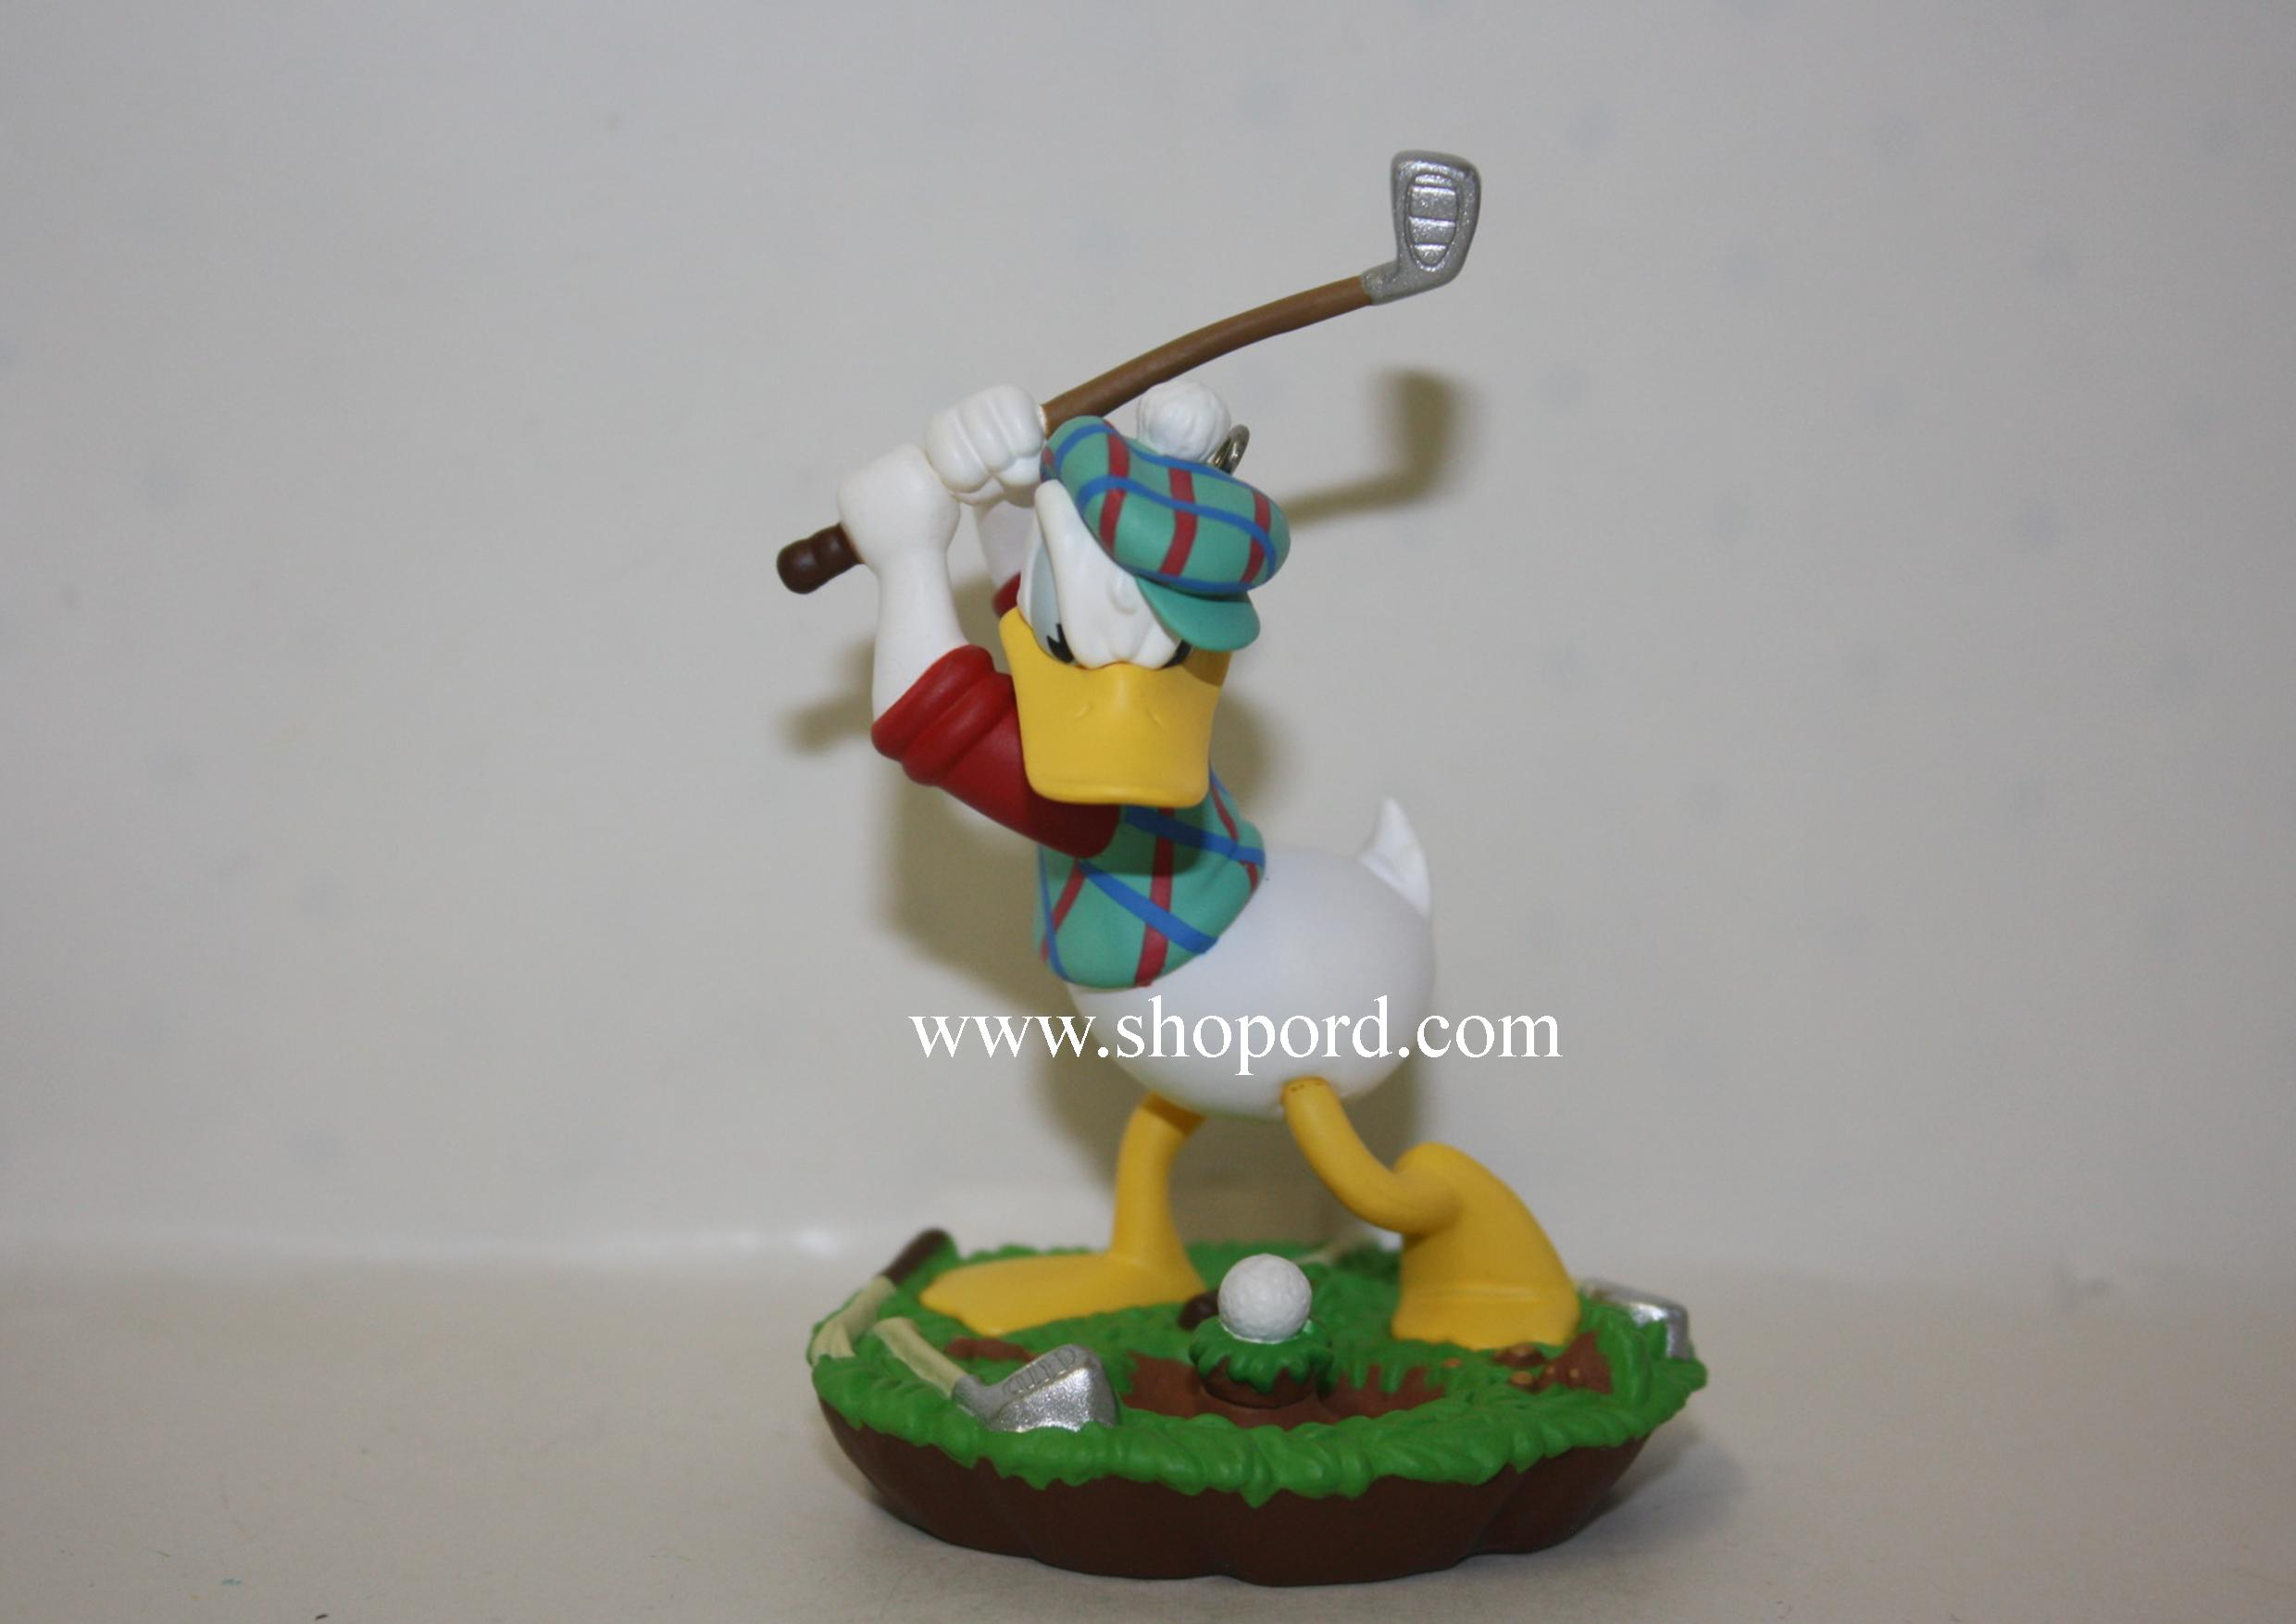 Hallmark 1998 Practice Swing Donald Duck Spring Ornament Mickey & Co QEO8396 Slightly Damaged Box